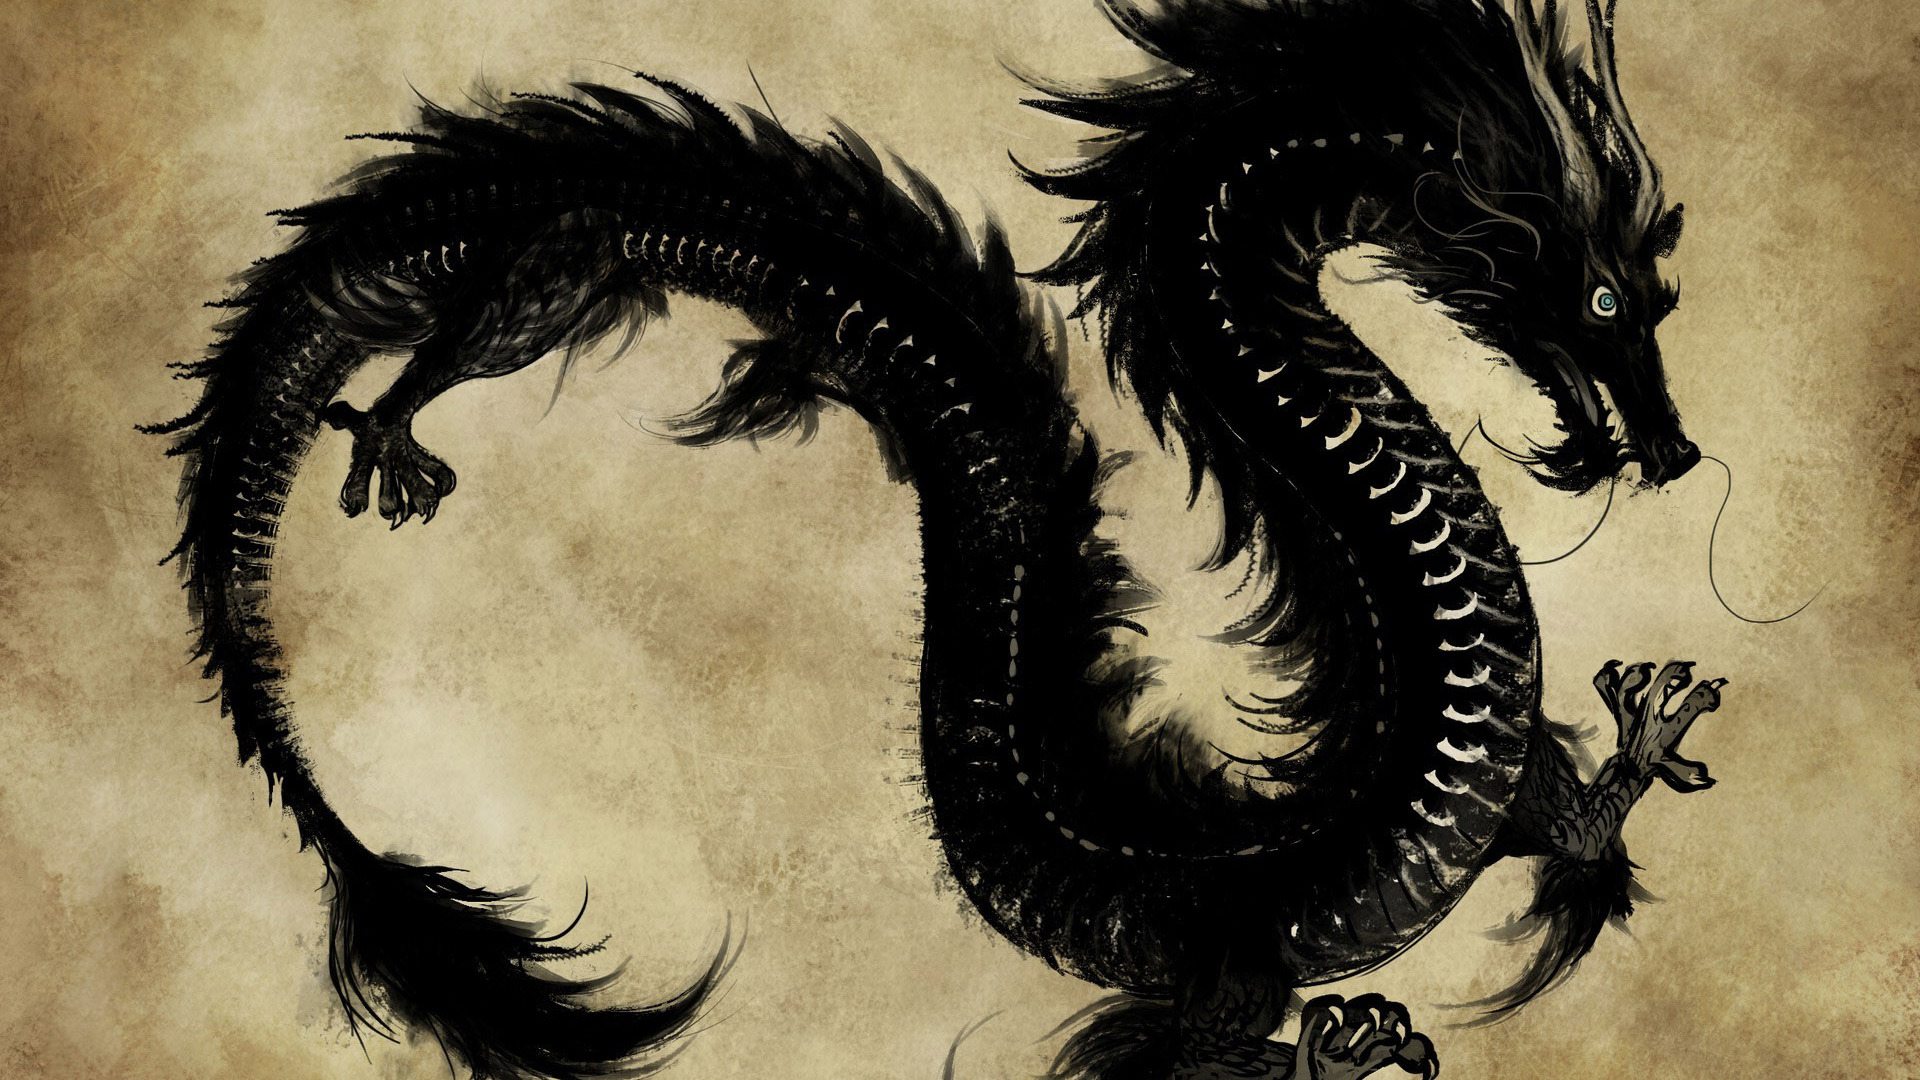 Black-chines-Dragon-1920-x-1080-Need-iPhone-S-Plus-Background-for-IPhoneSPlus-wallpaper-wp3603401